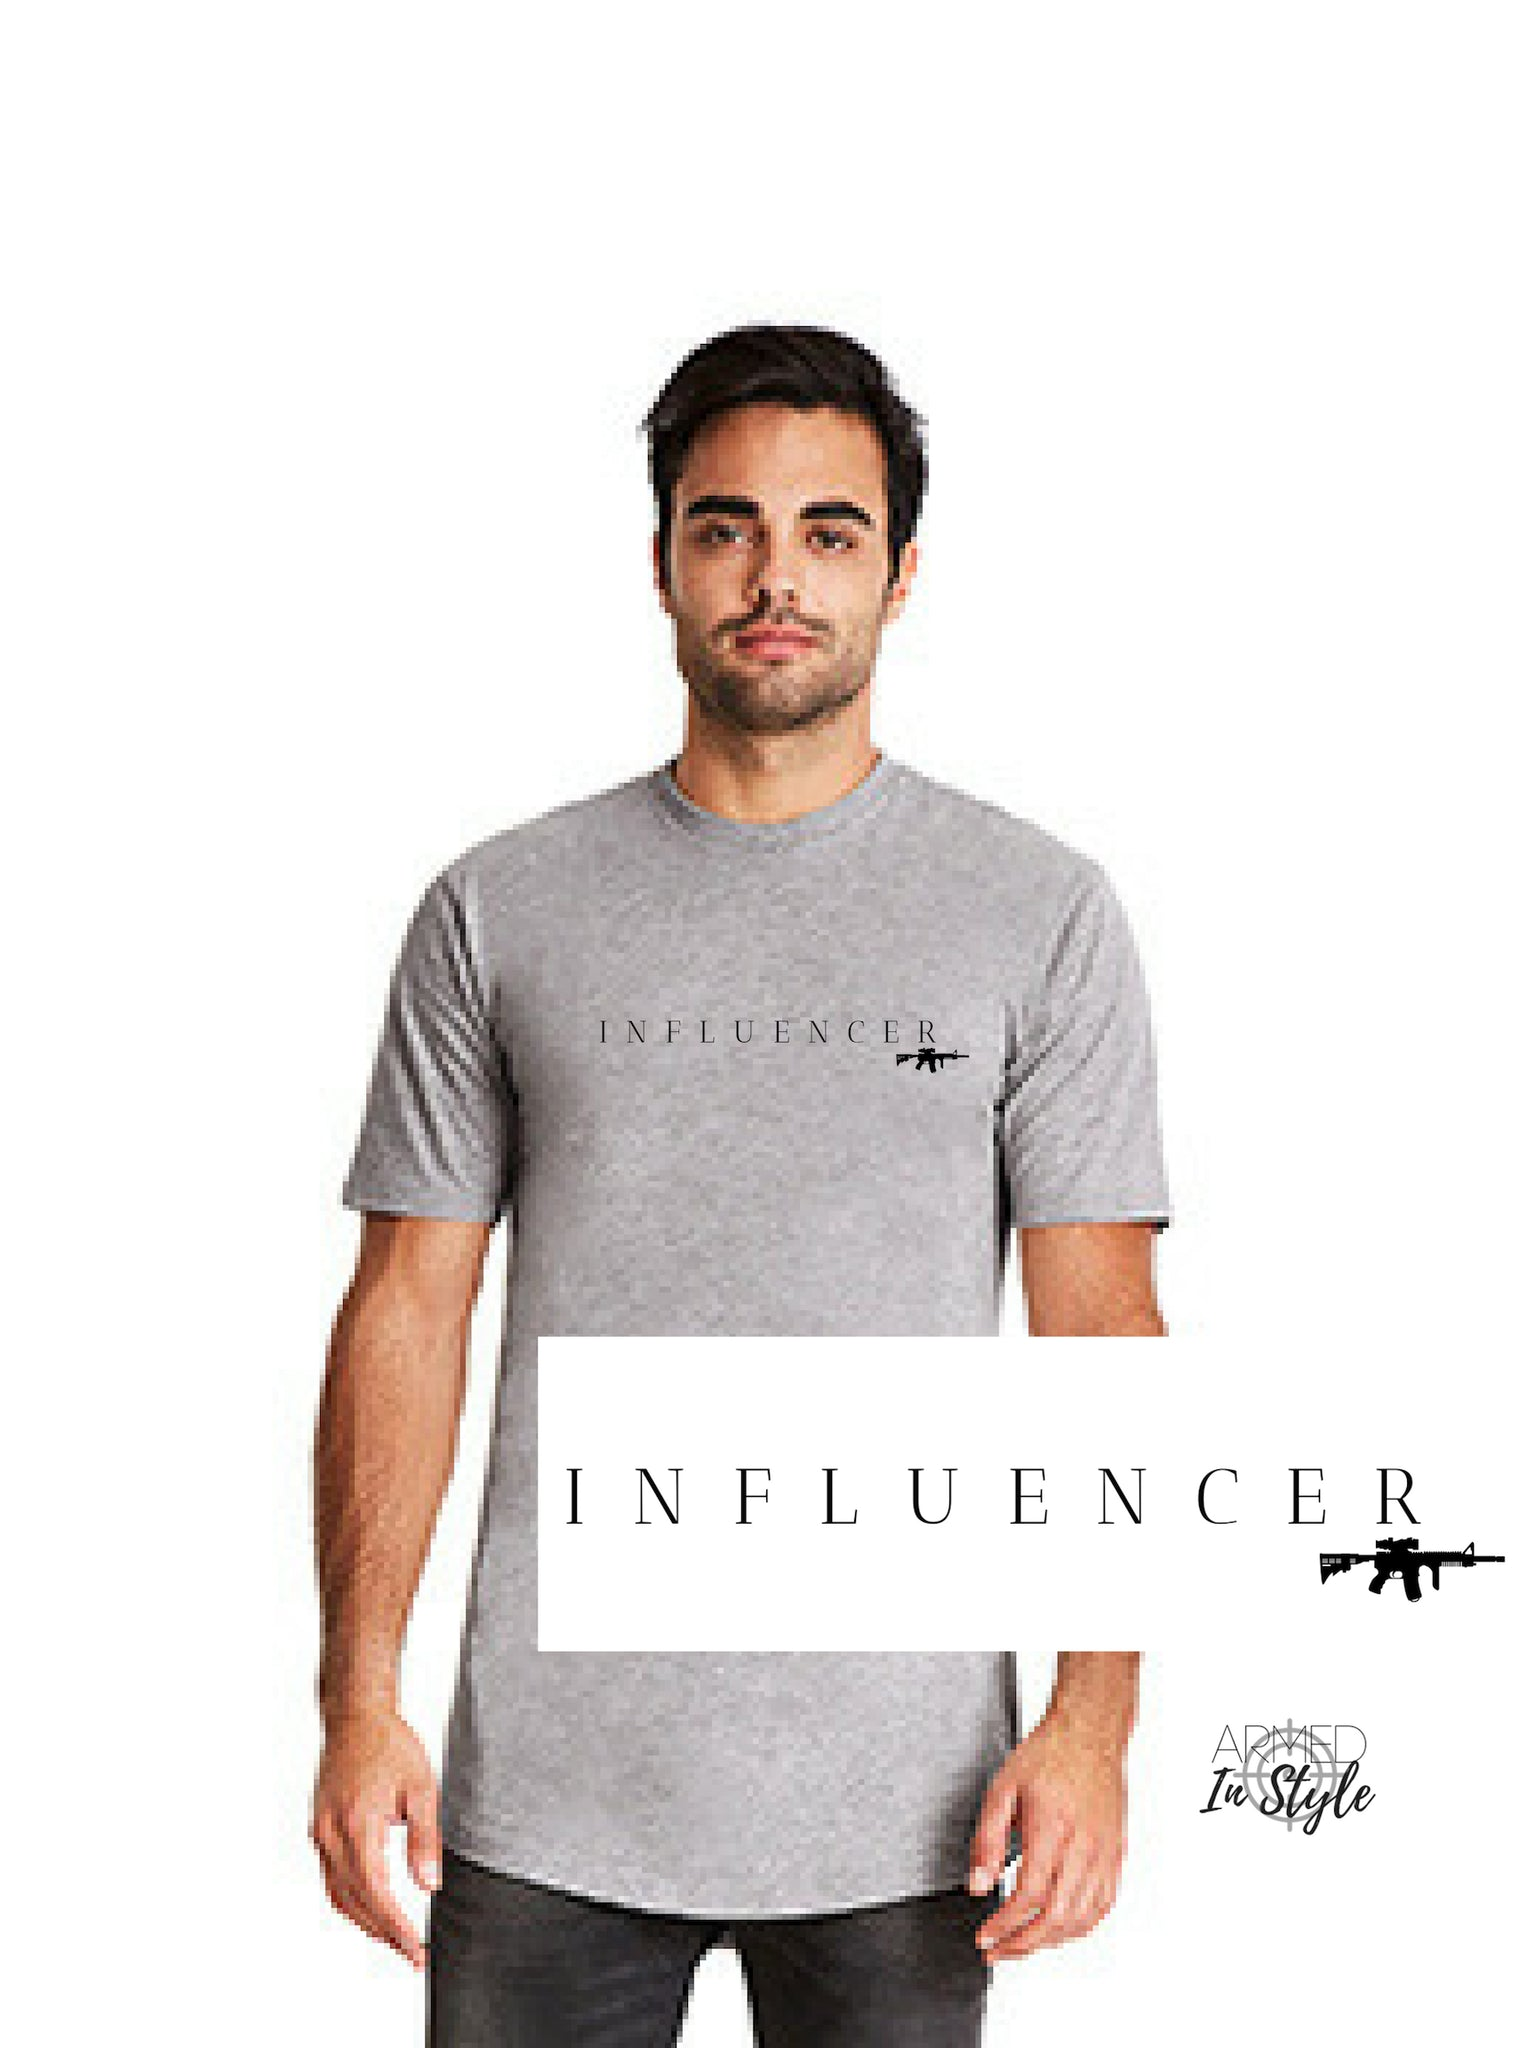 Influencer AR, Men's Urban T-Shirt